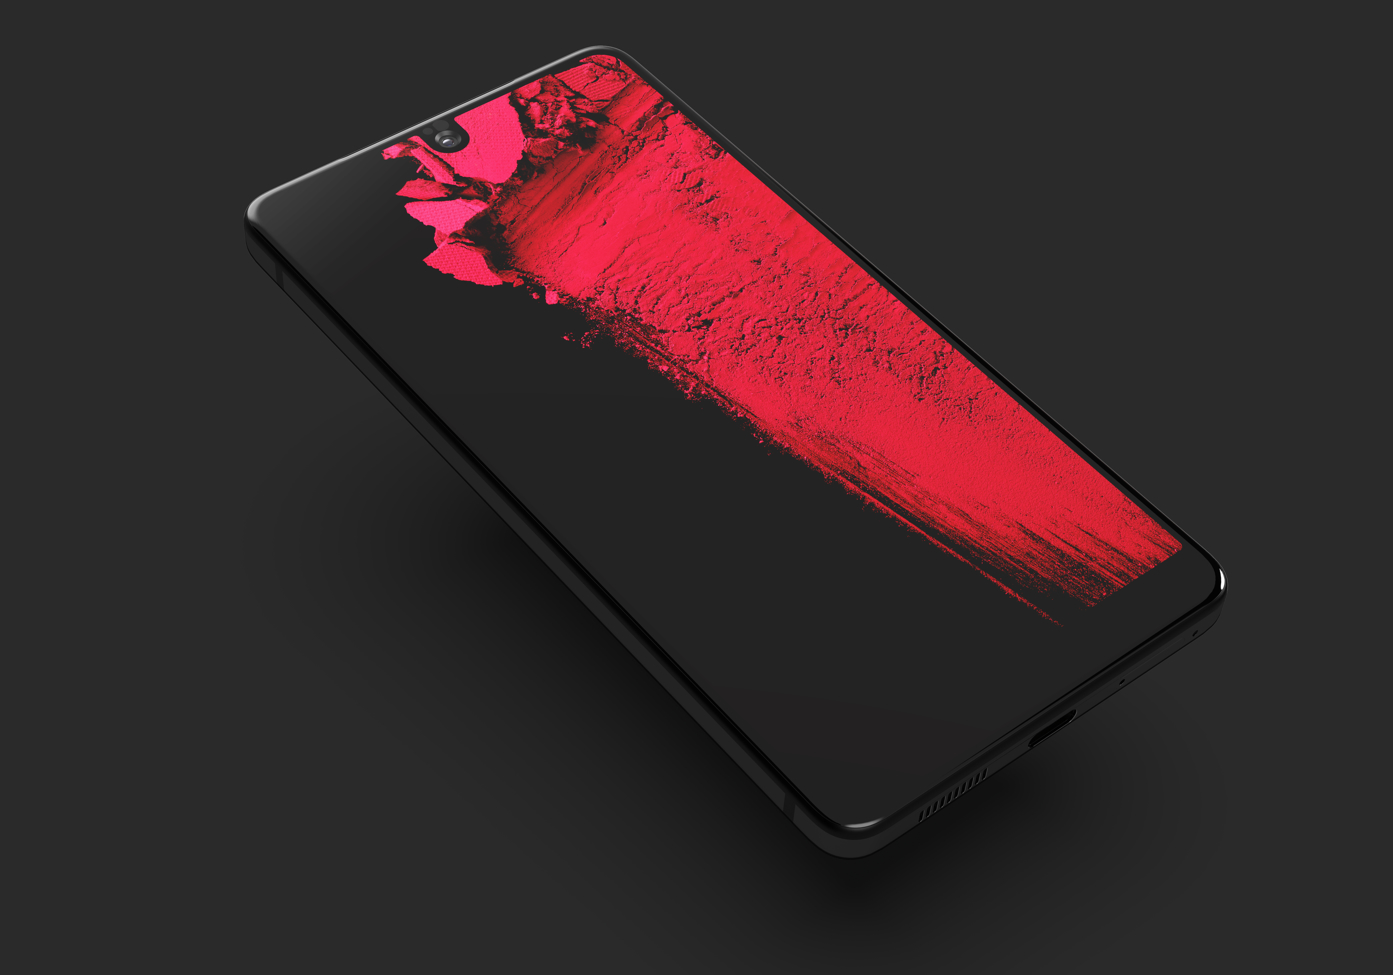 Android Co-Founder Andy Rubin's Essential Team Reportedly Building AI-Powered Smartphone